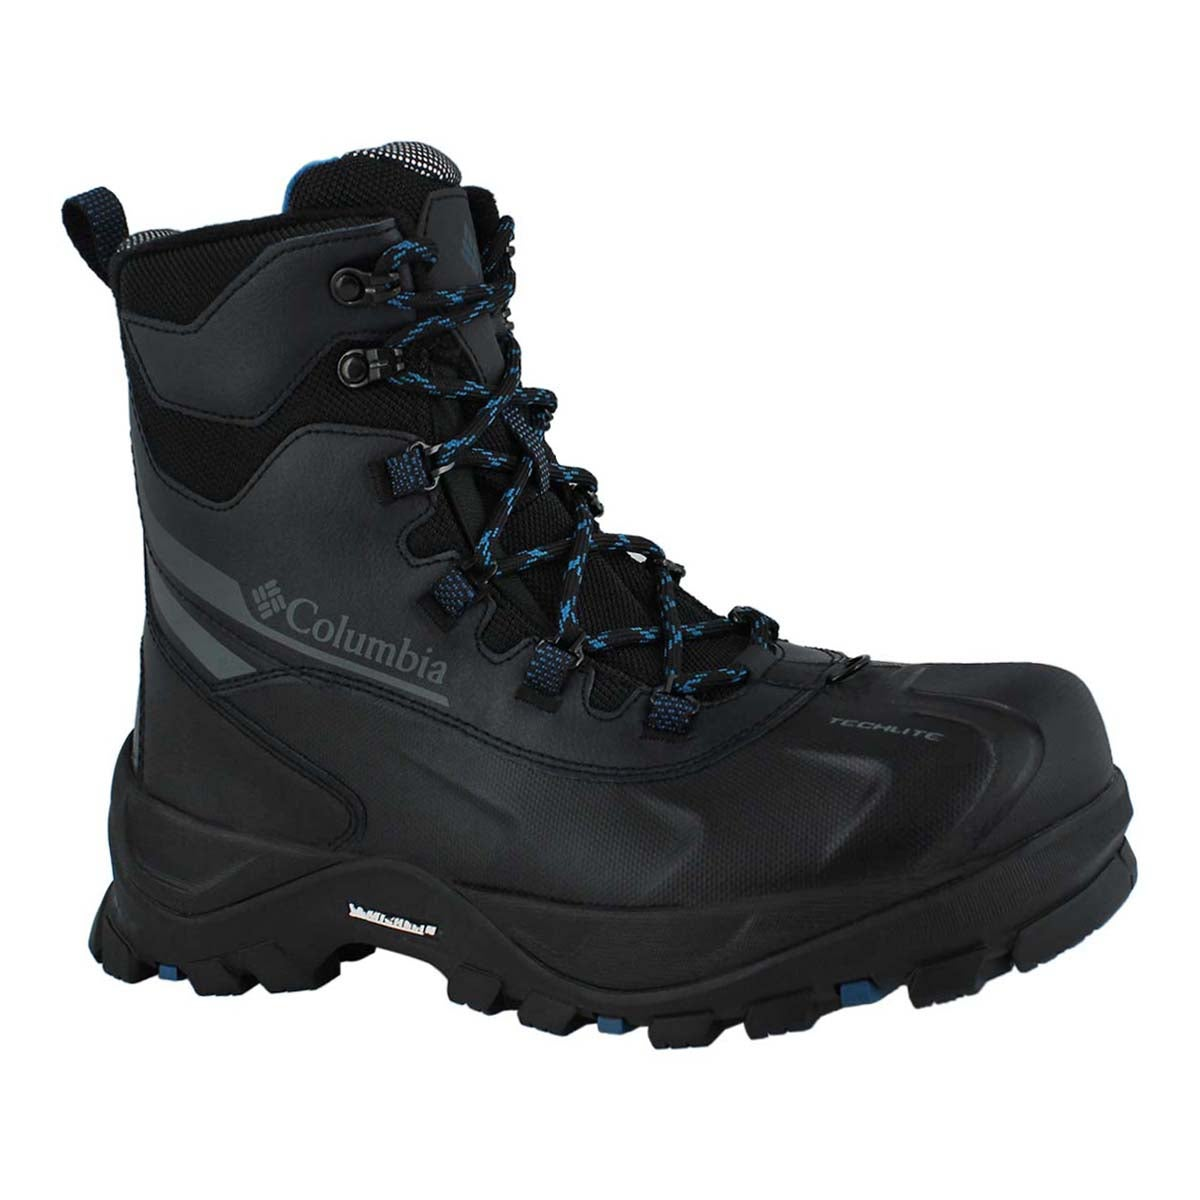 Mns BugabootPlusIVOmniHeat blk boot-WIDE